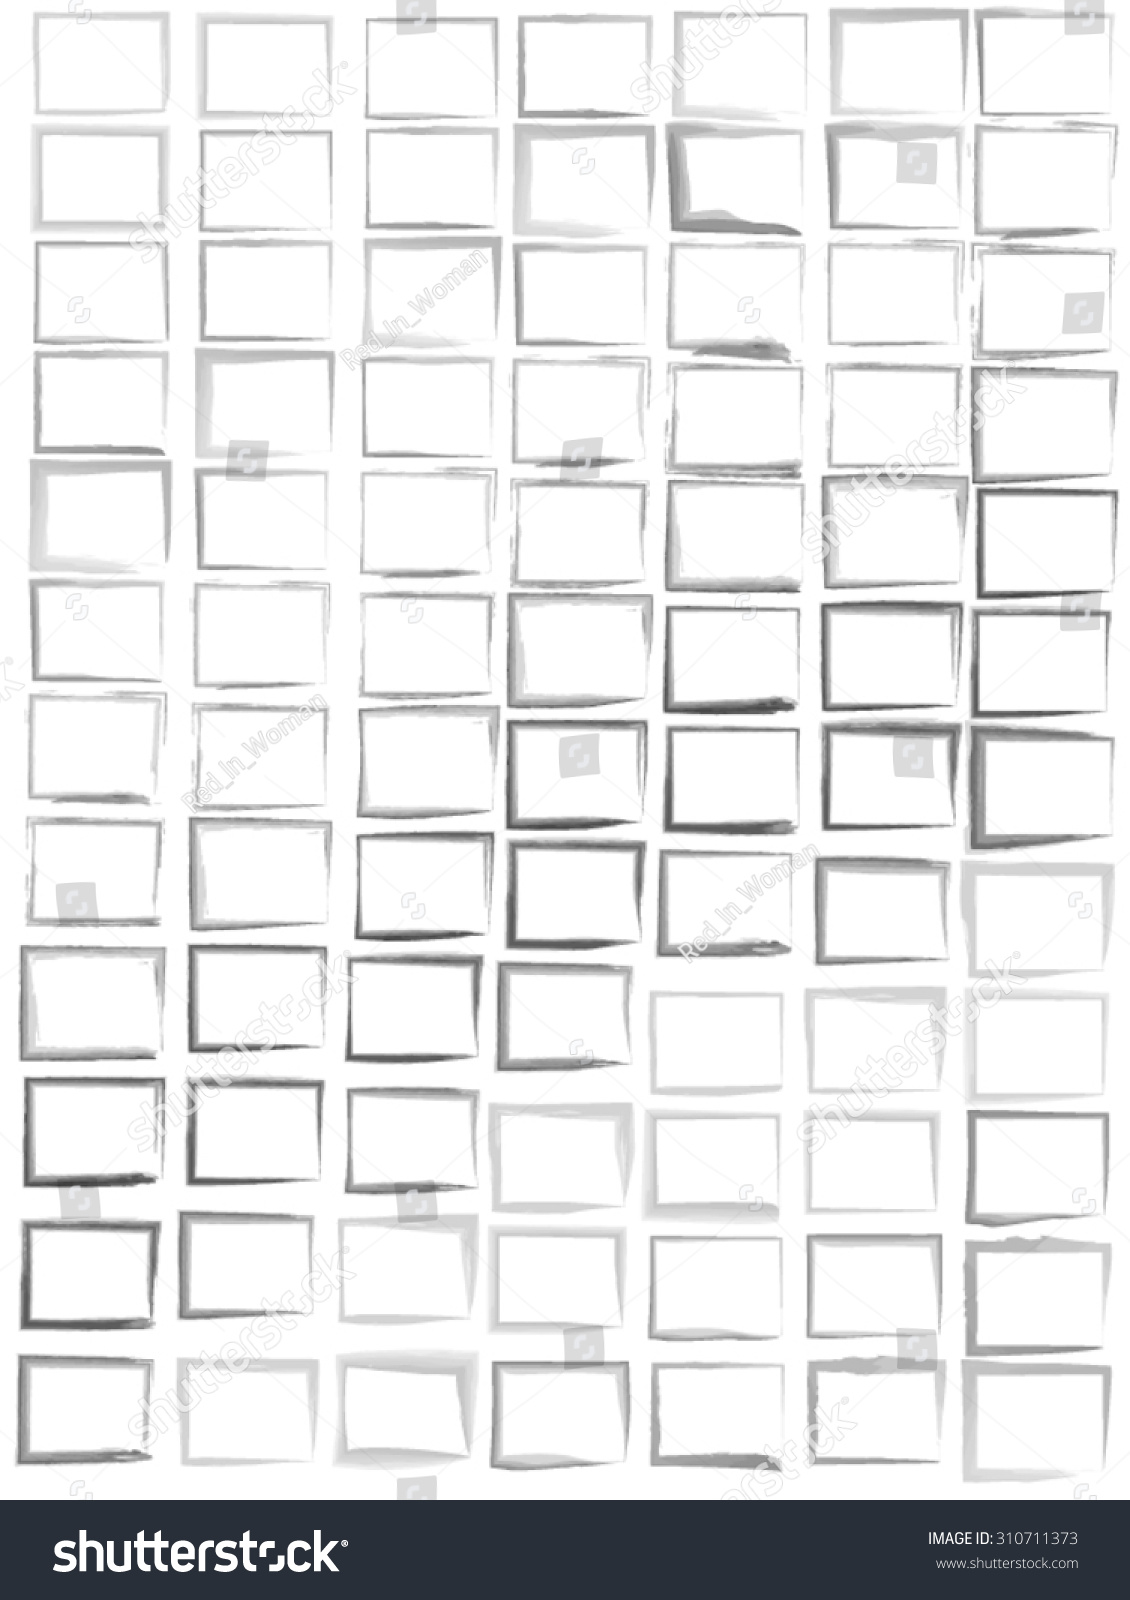 Background image transparency - Set Of Square Black Watercolor On White Background Different Thickness Transparency And Shape